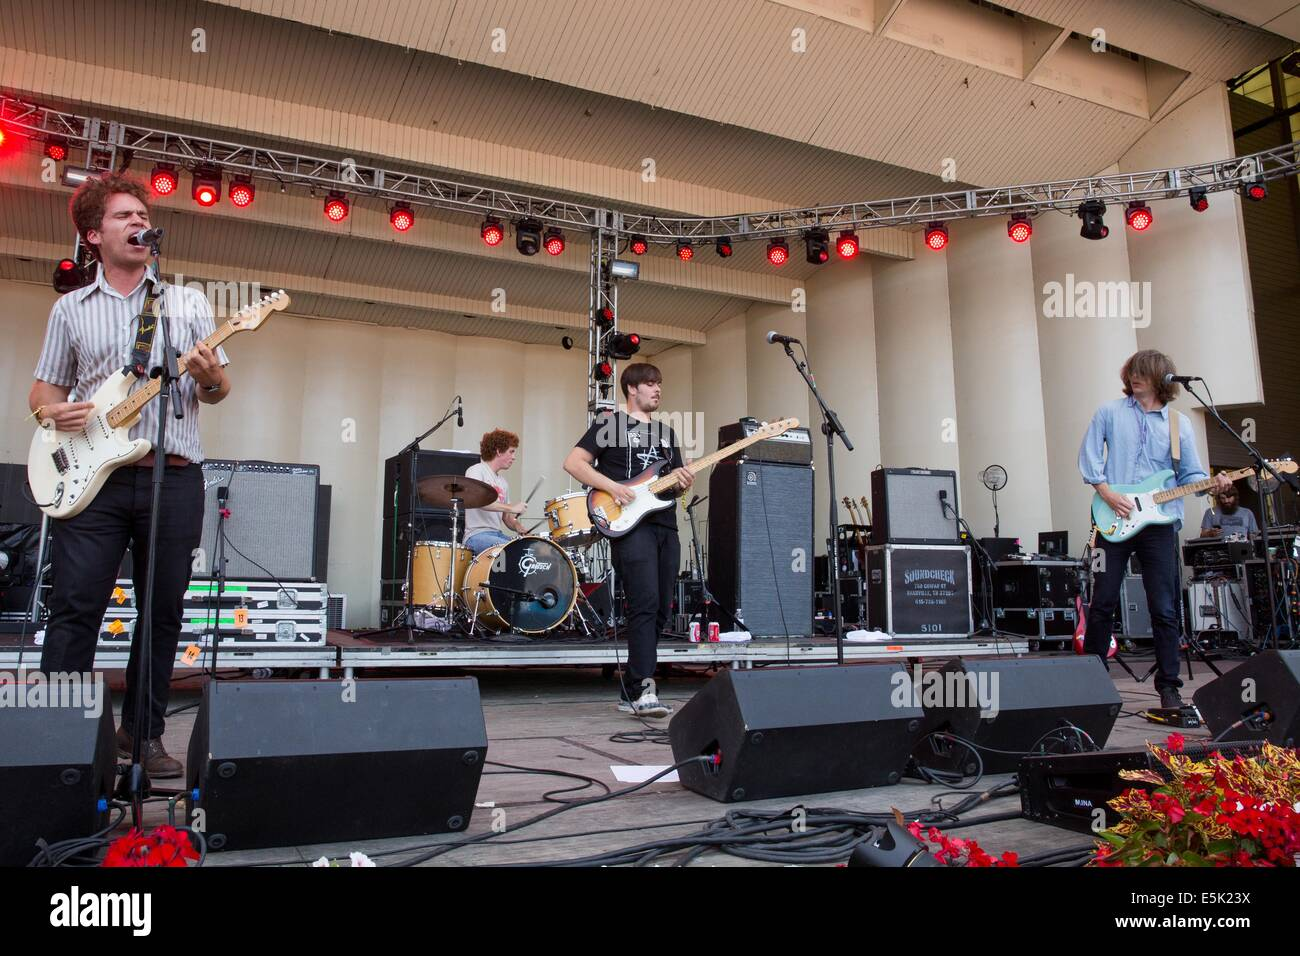 Chicago, Illinois, USA. 2nd Aug, 2014. Parquet Courts perform live at the 2014 Lollapalooza Music Festival in Chicago, - Stock Image